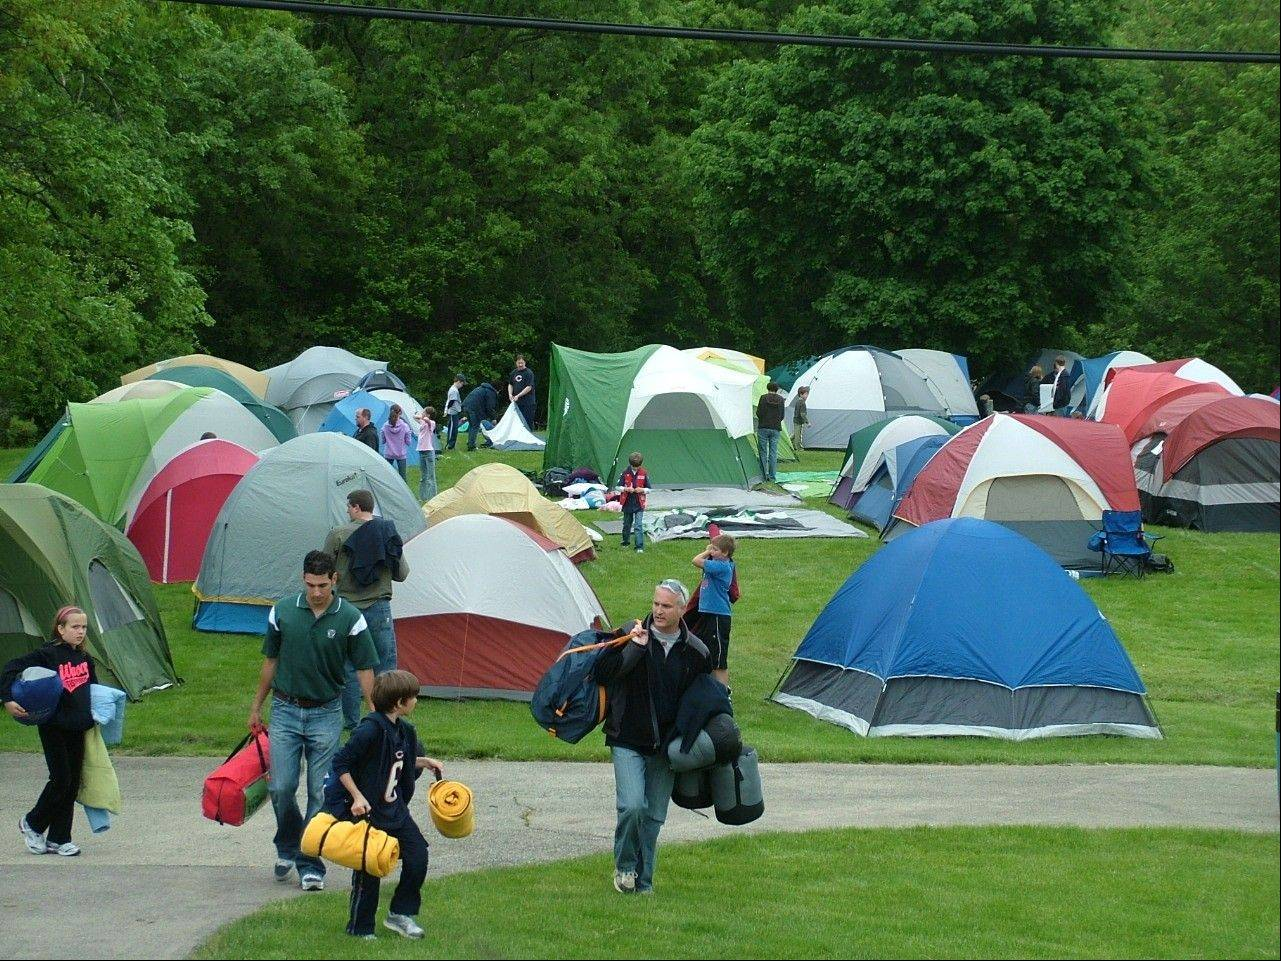 Although designed for Scouts, local families are also welcome at the Kane County Cougars overnight campout.